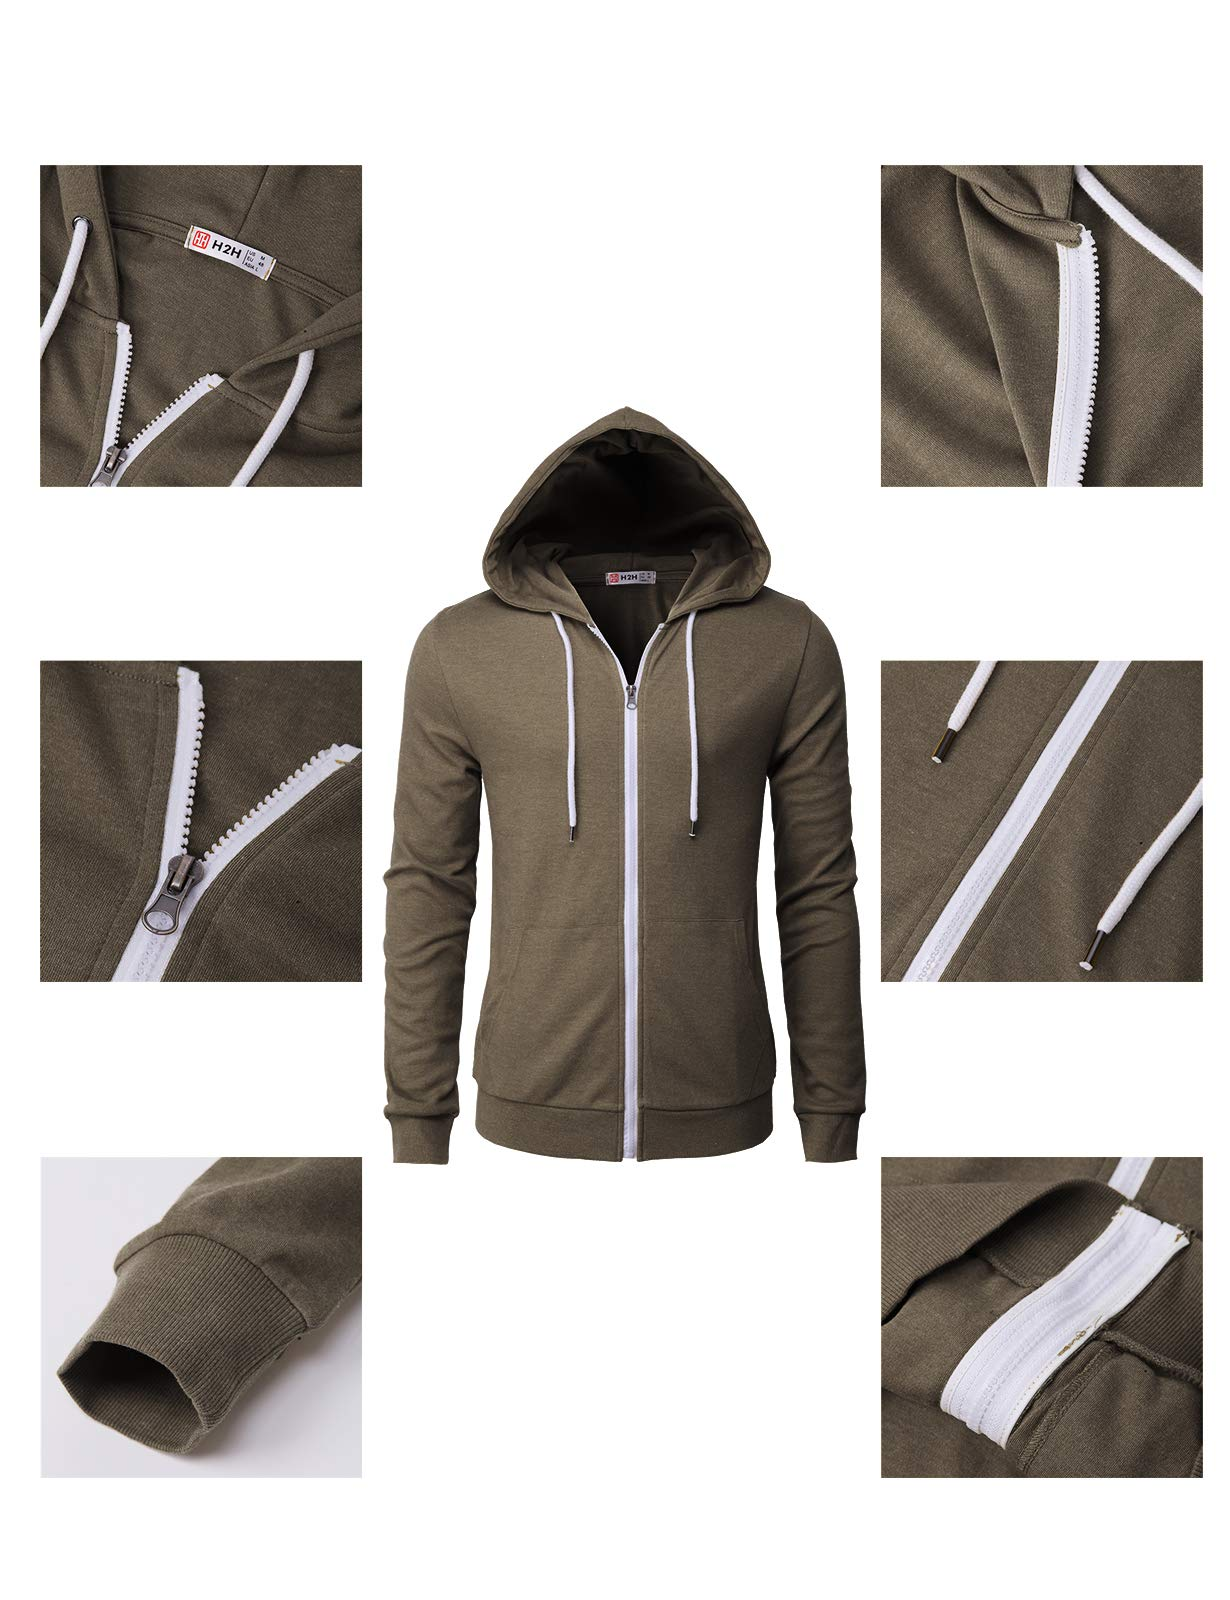 H2H Mens Casual Zip up Hoodie Basic Long Sleeve Zip up HEATHERBROWN US 2XL/Asia 3XL (CMOHOL048) by H2H (Image #4)